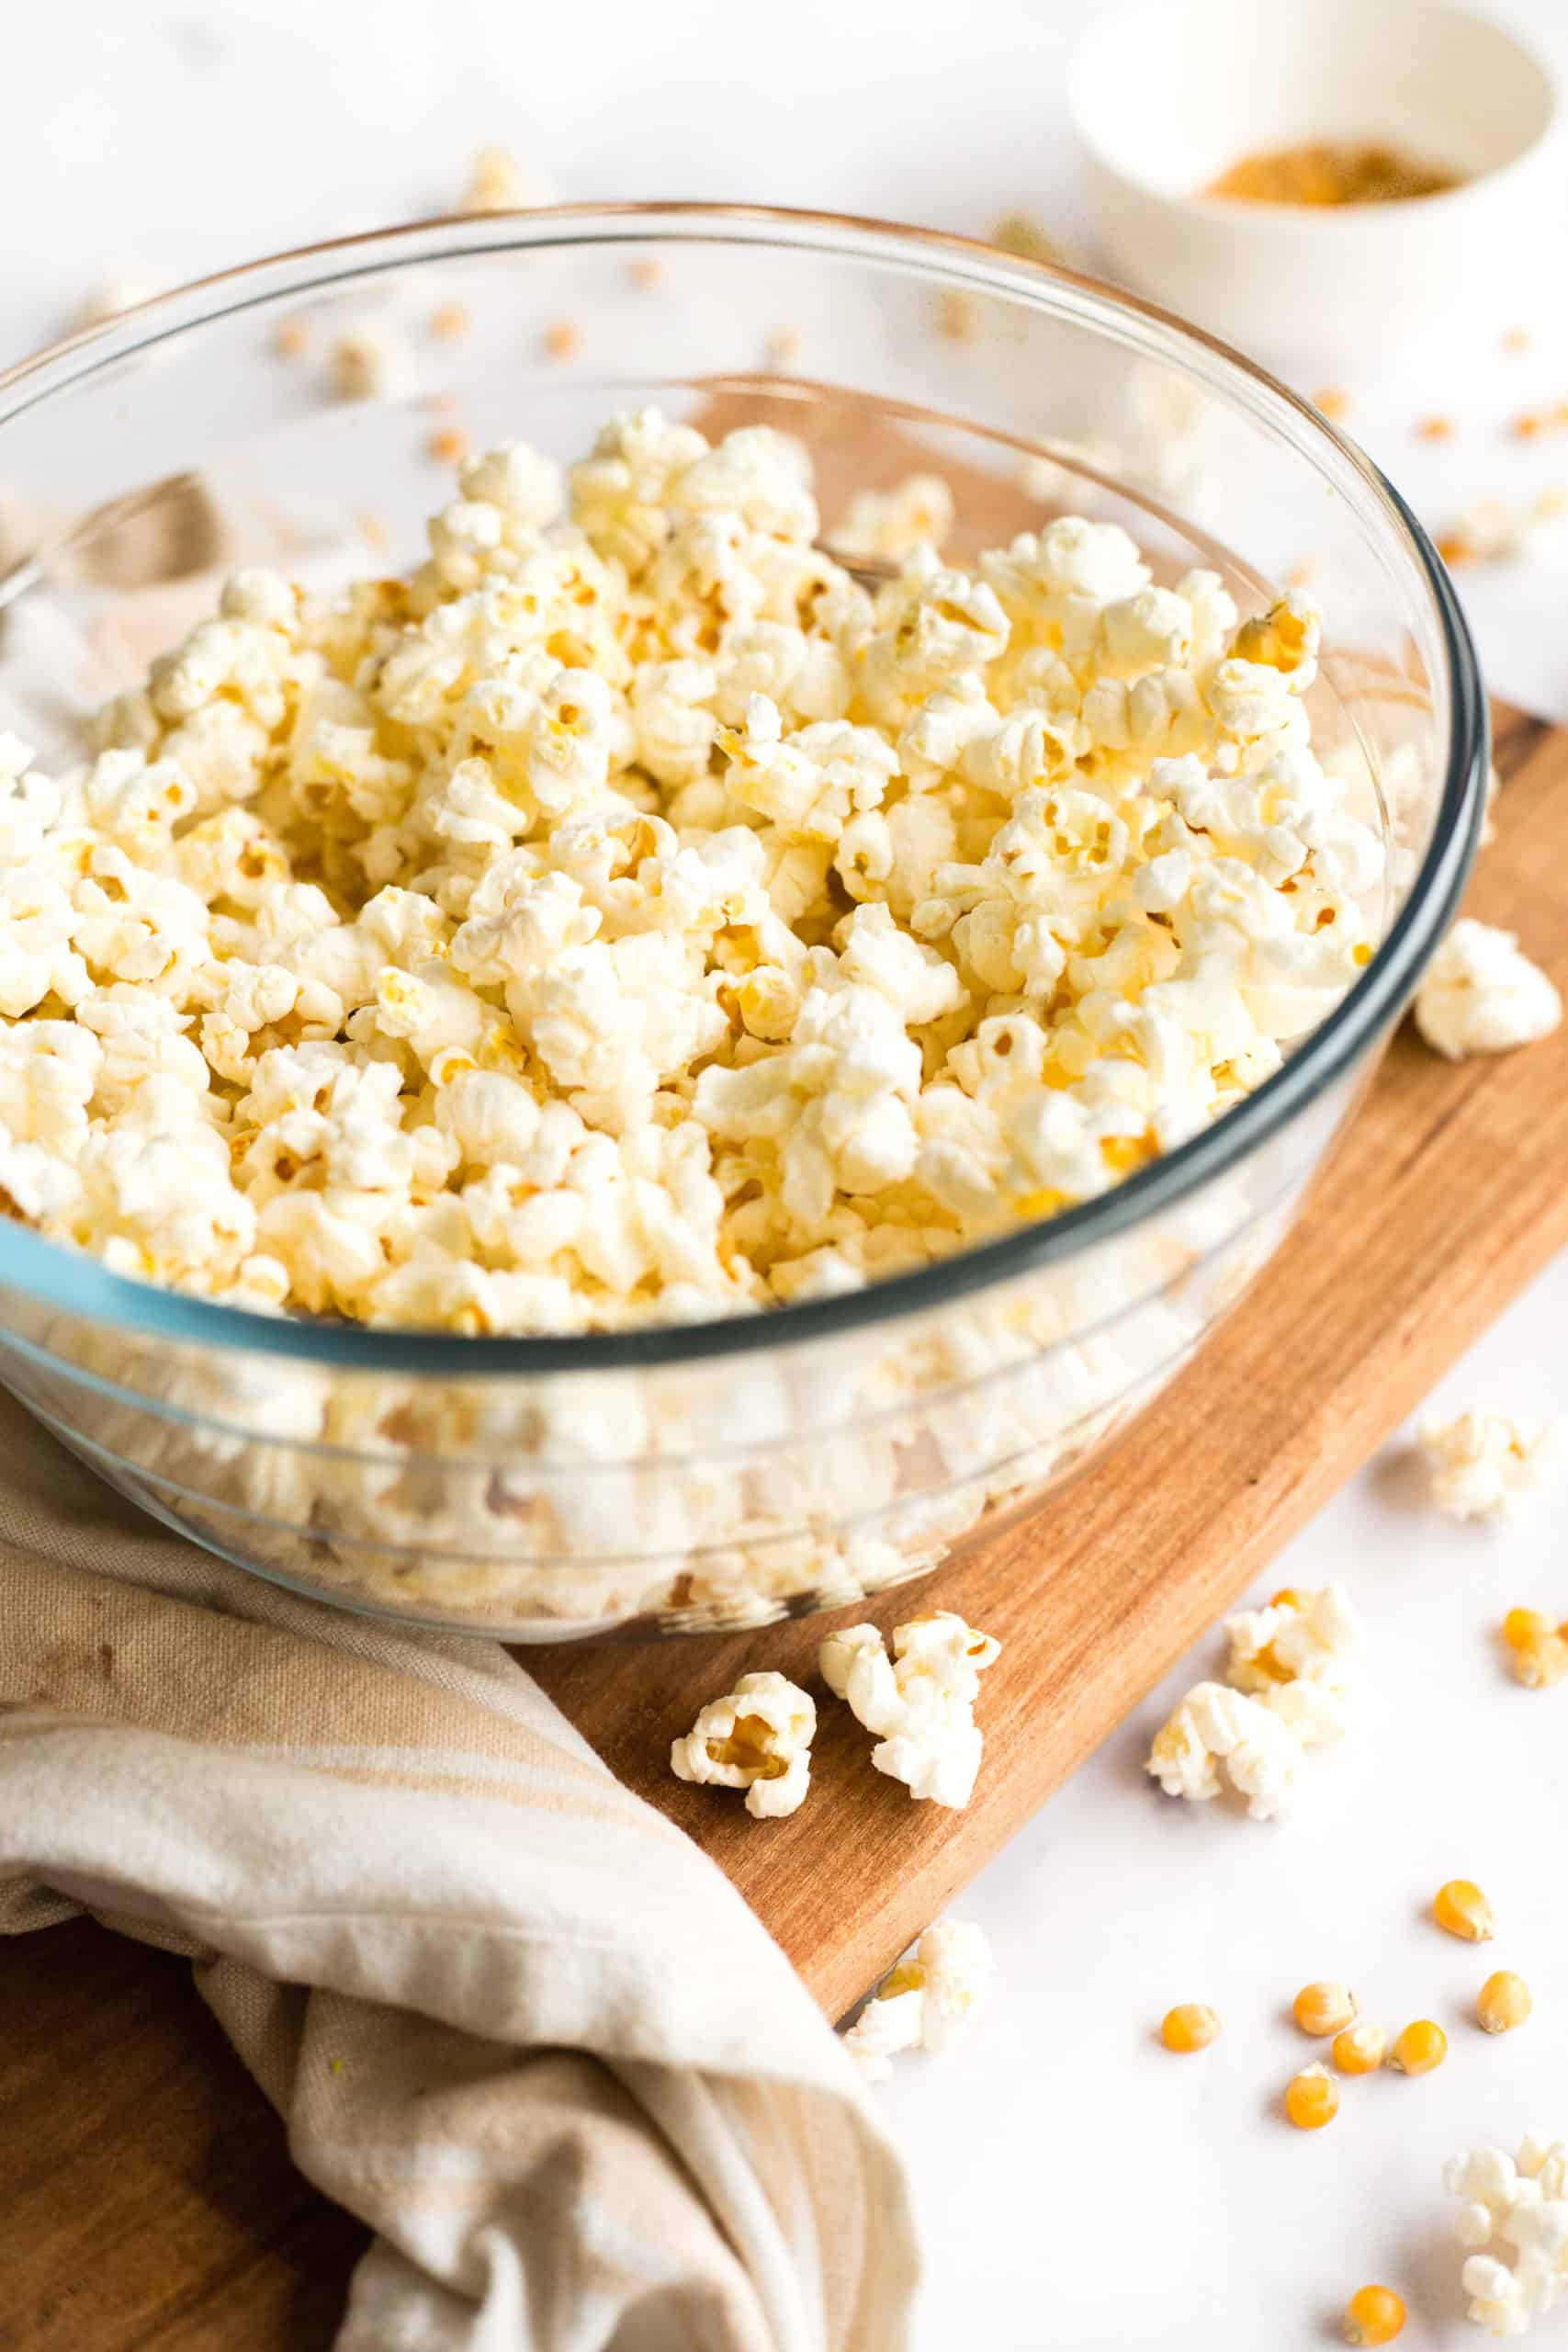 A bowl full of freshly popped microwave popcorn.